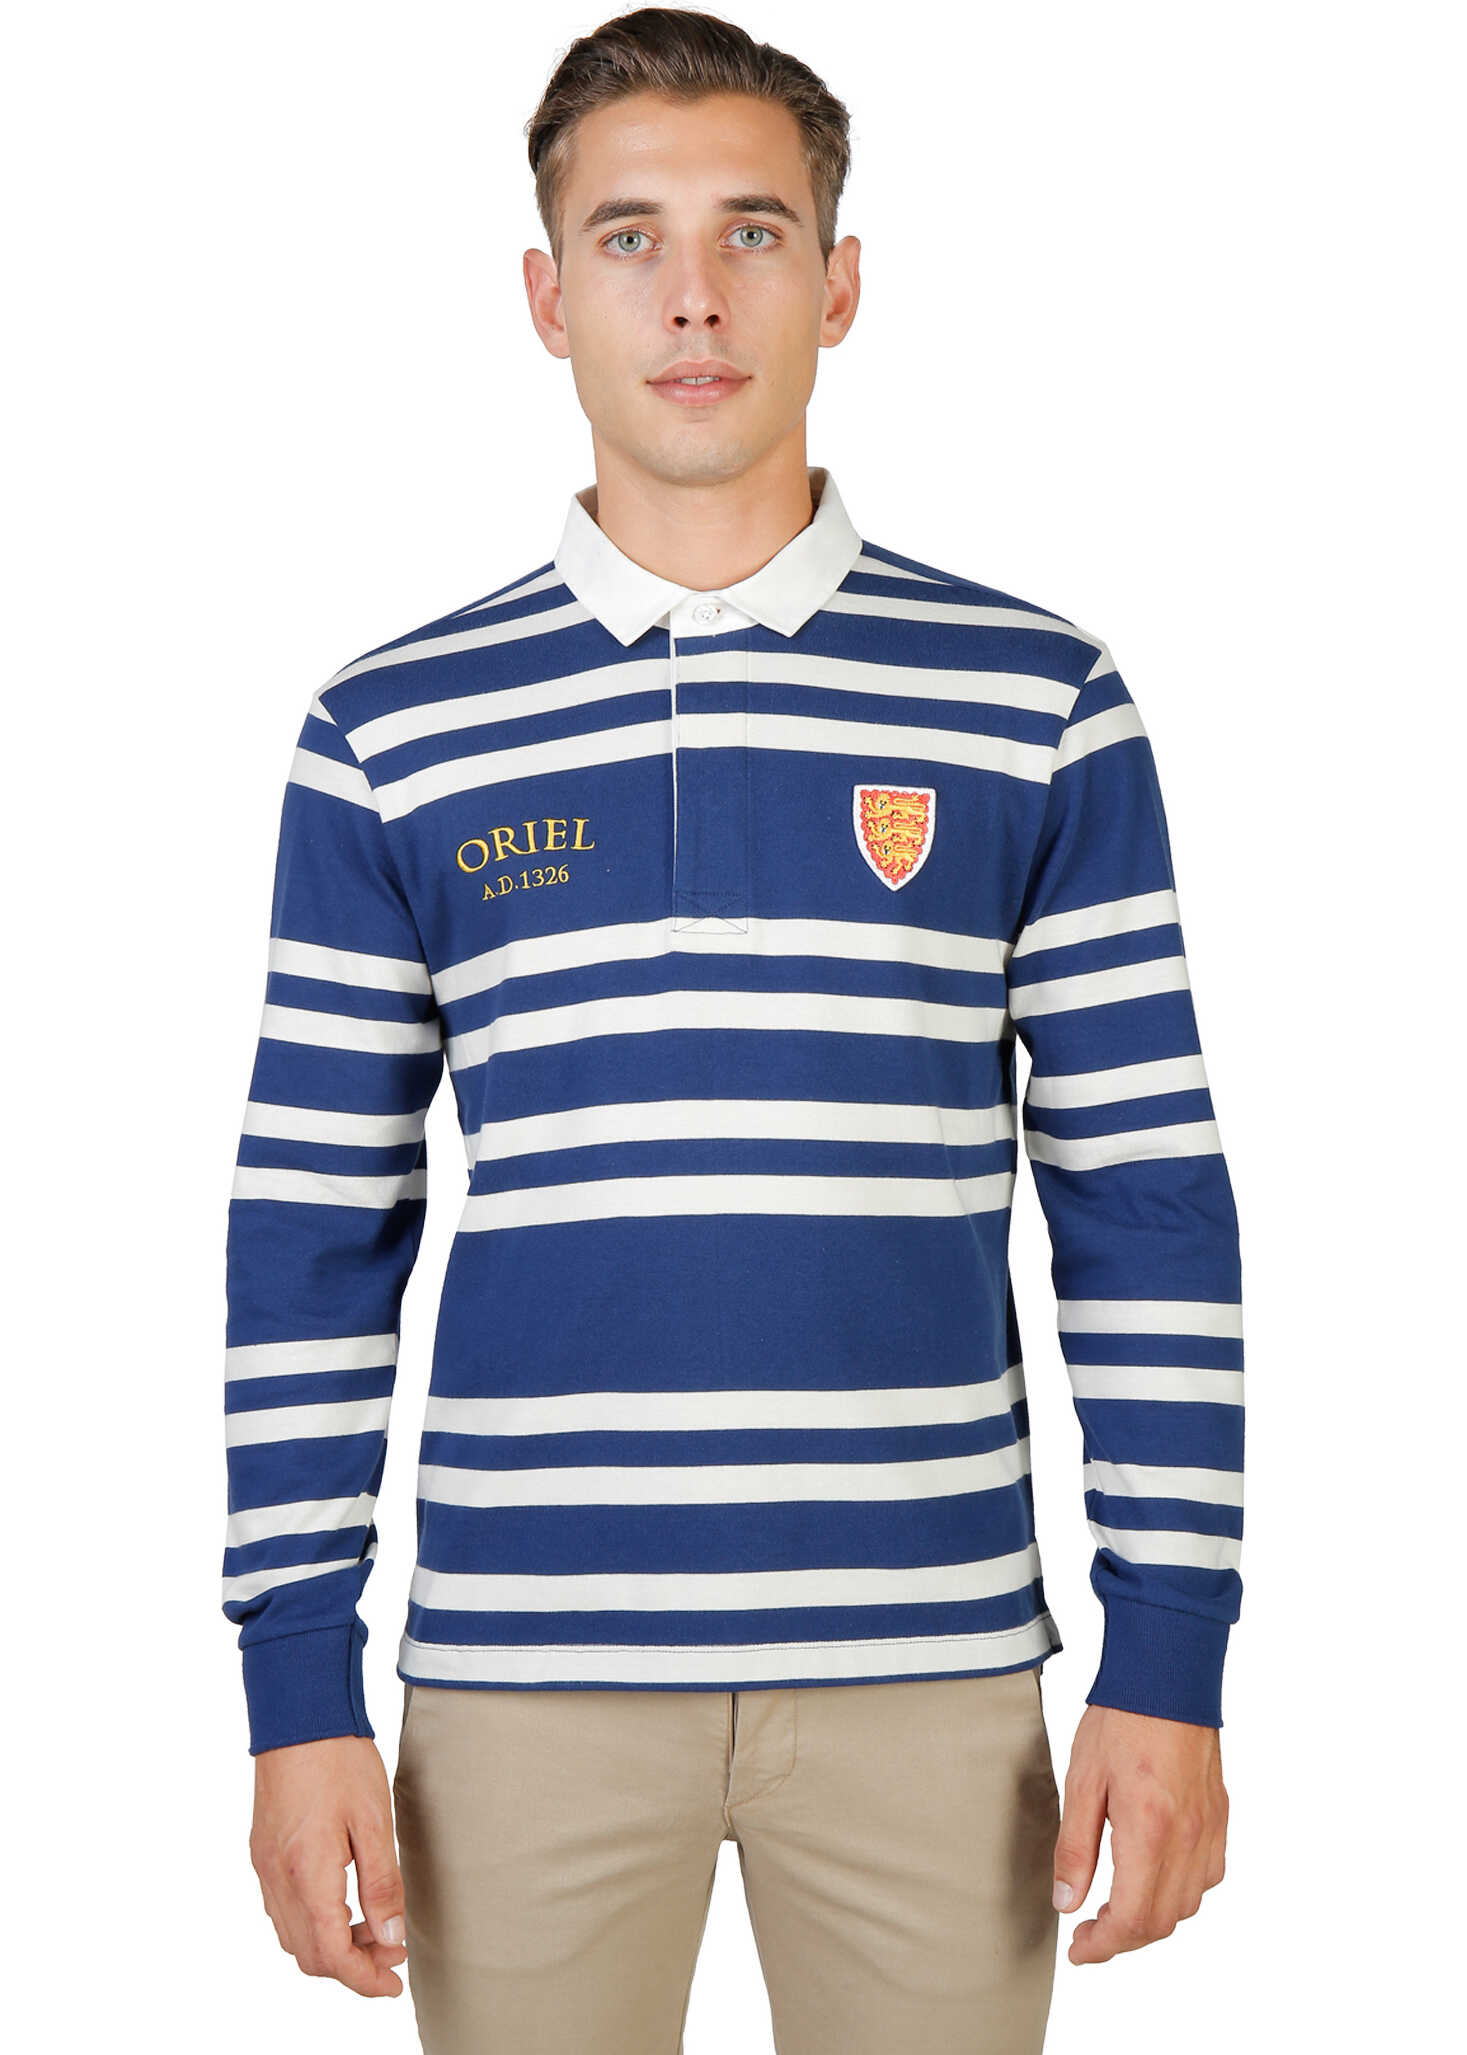 Oxford University Oriel-Rugby-Ml BLUE image0